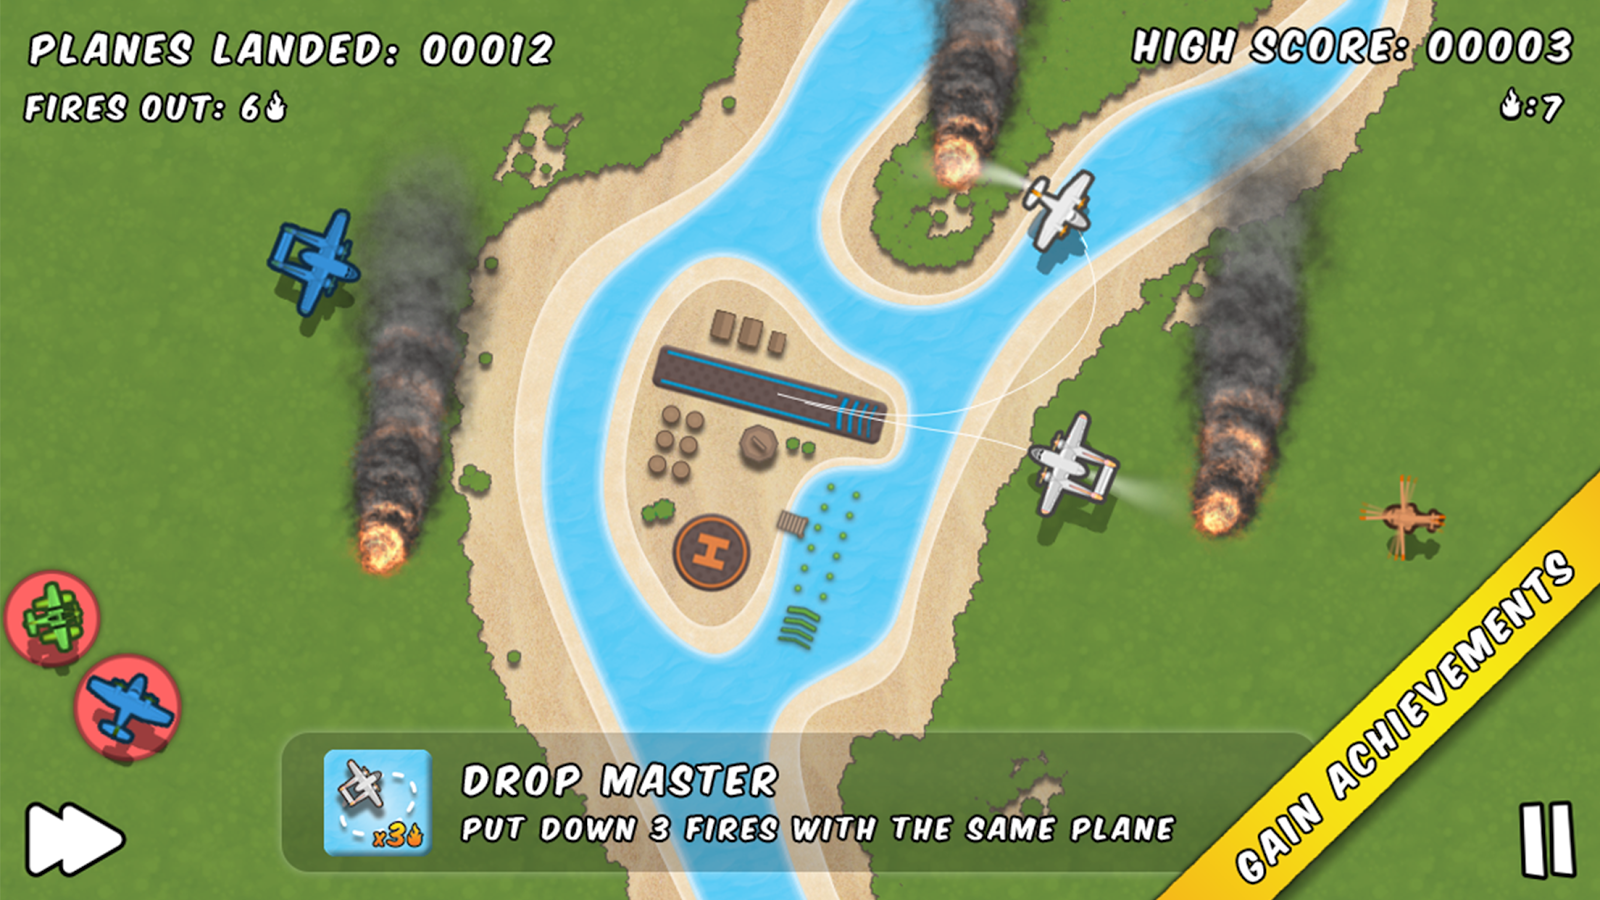 Planes Control - Play and Control the Traffic to Land Your Plane